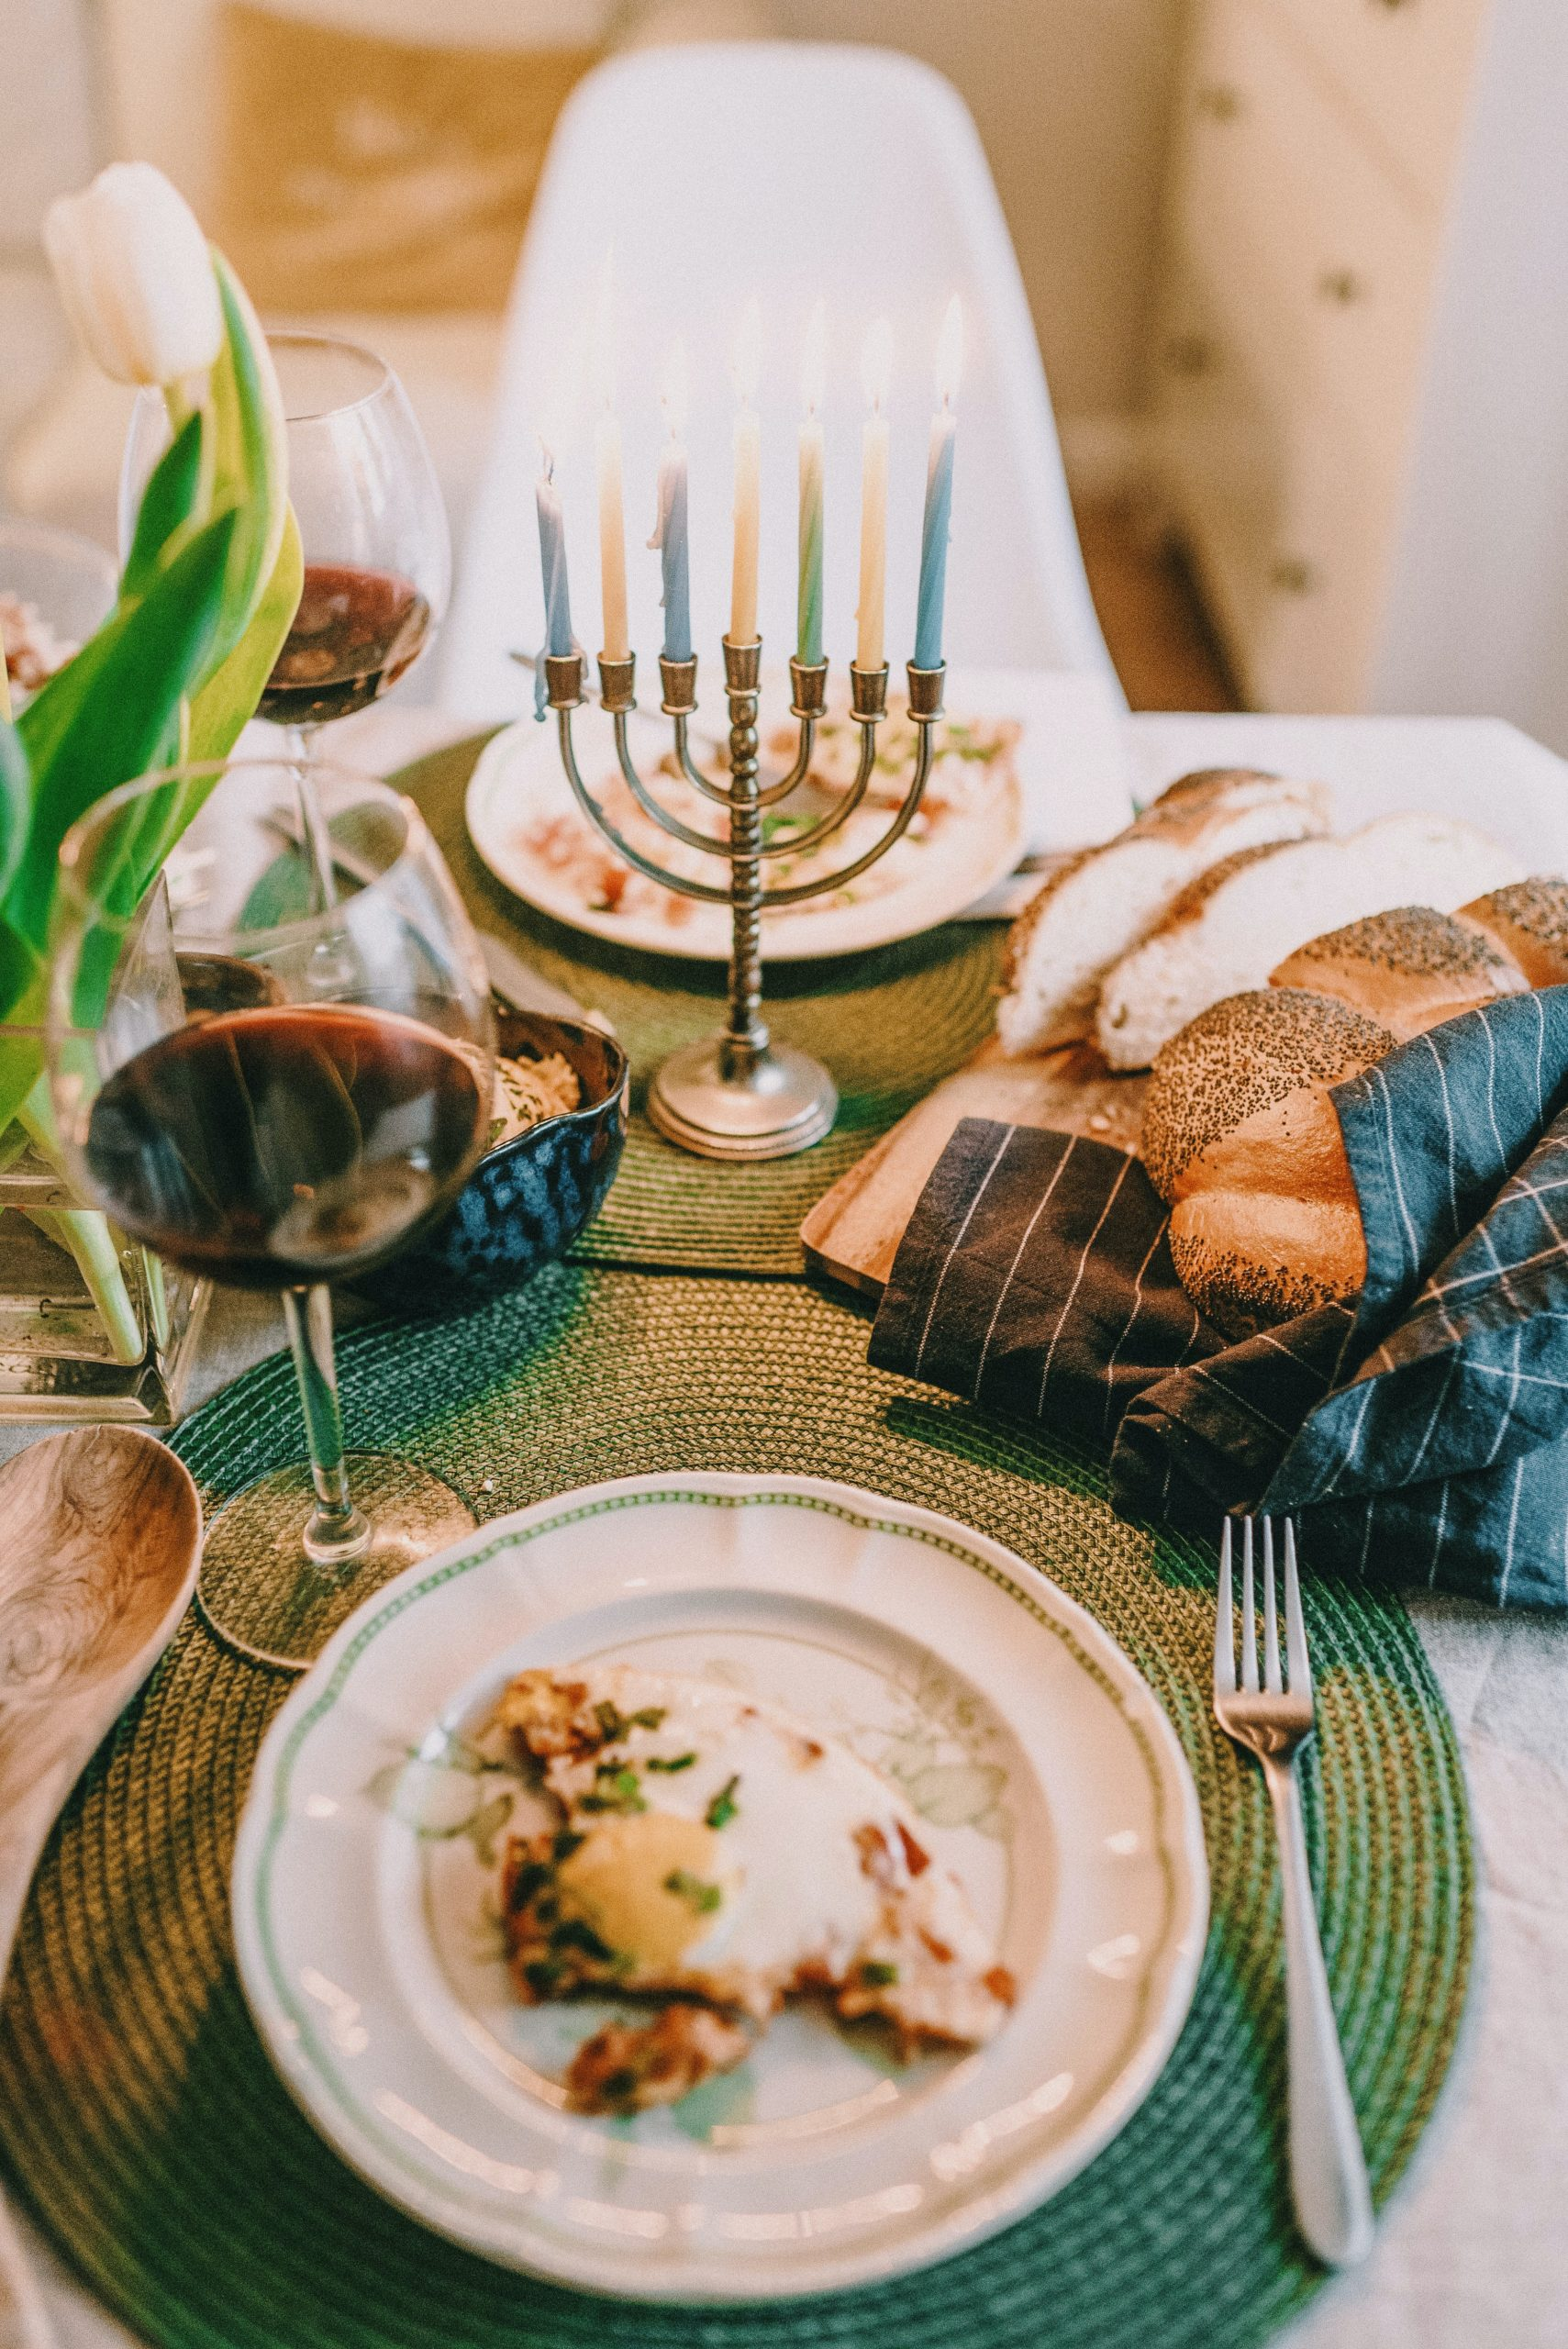 Hanukah-themed table setting